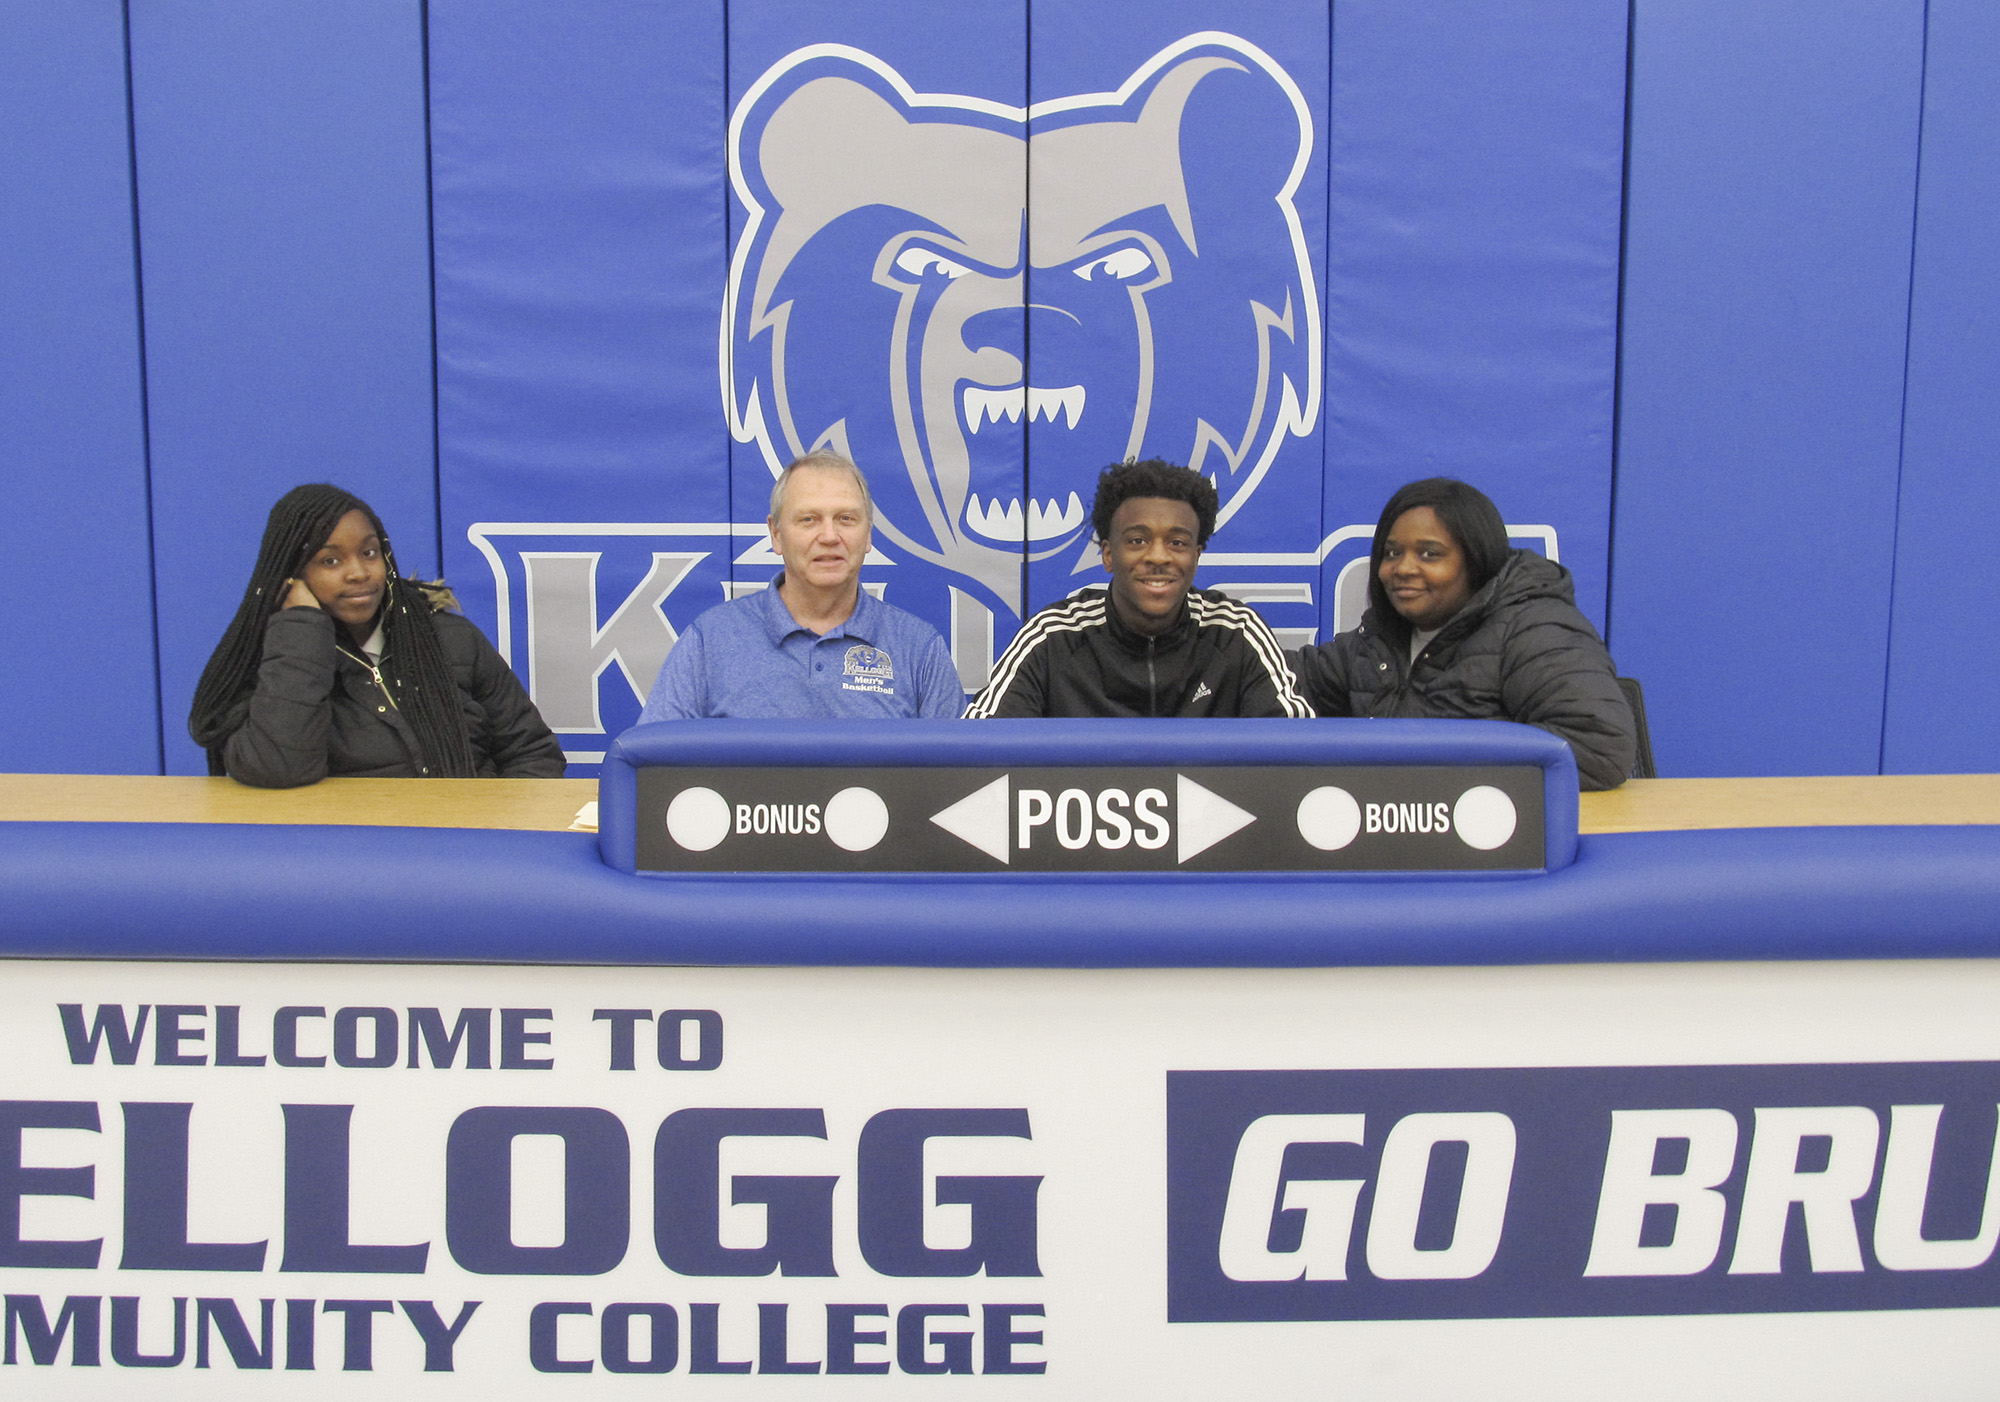 Pictured, from left to right, are Asya Wesley (sister), KCC's Head Men's Basketball Coach Gary Sprague, Eddie Wesley and Ardra Wesley (mother).